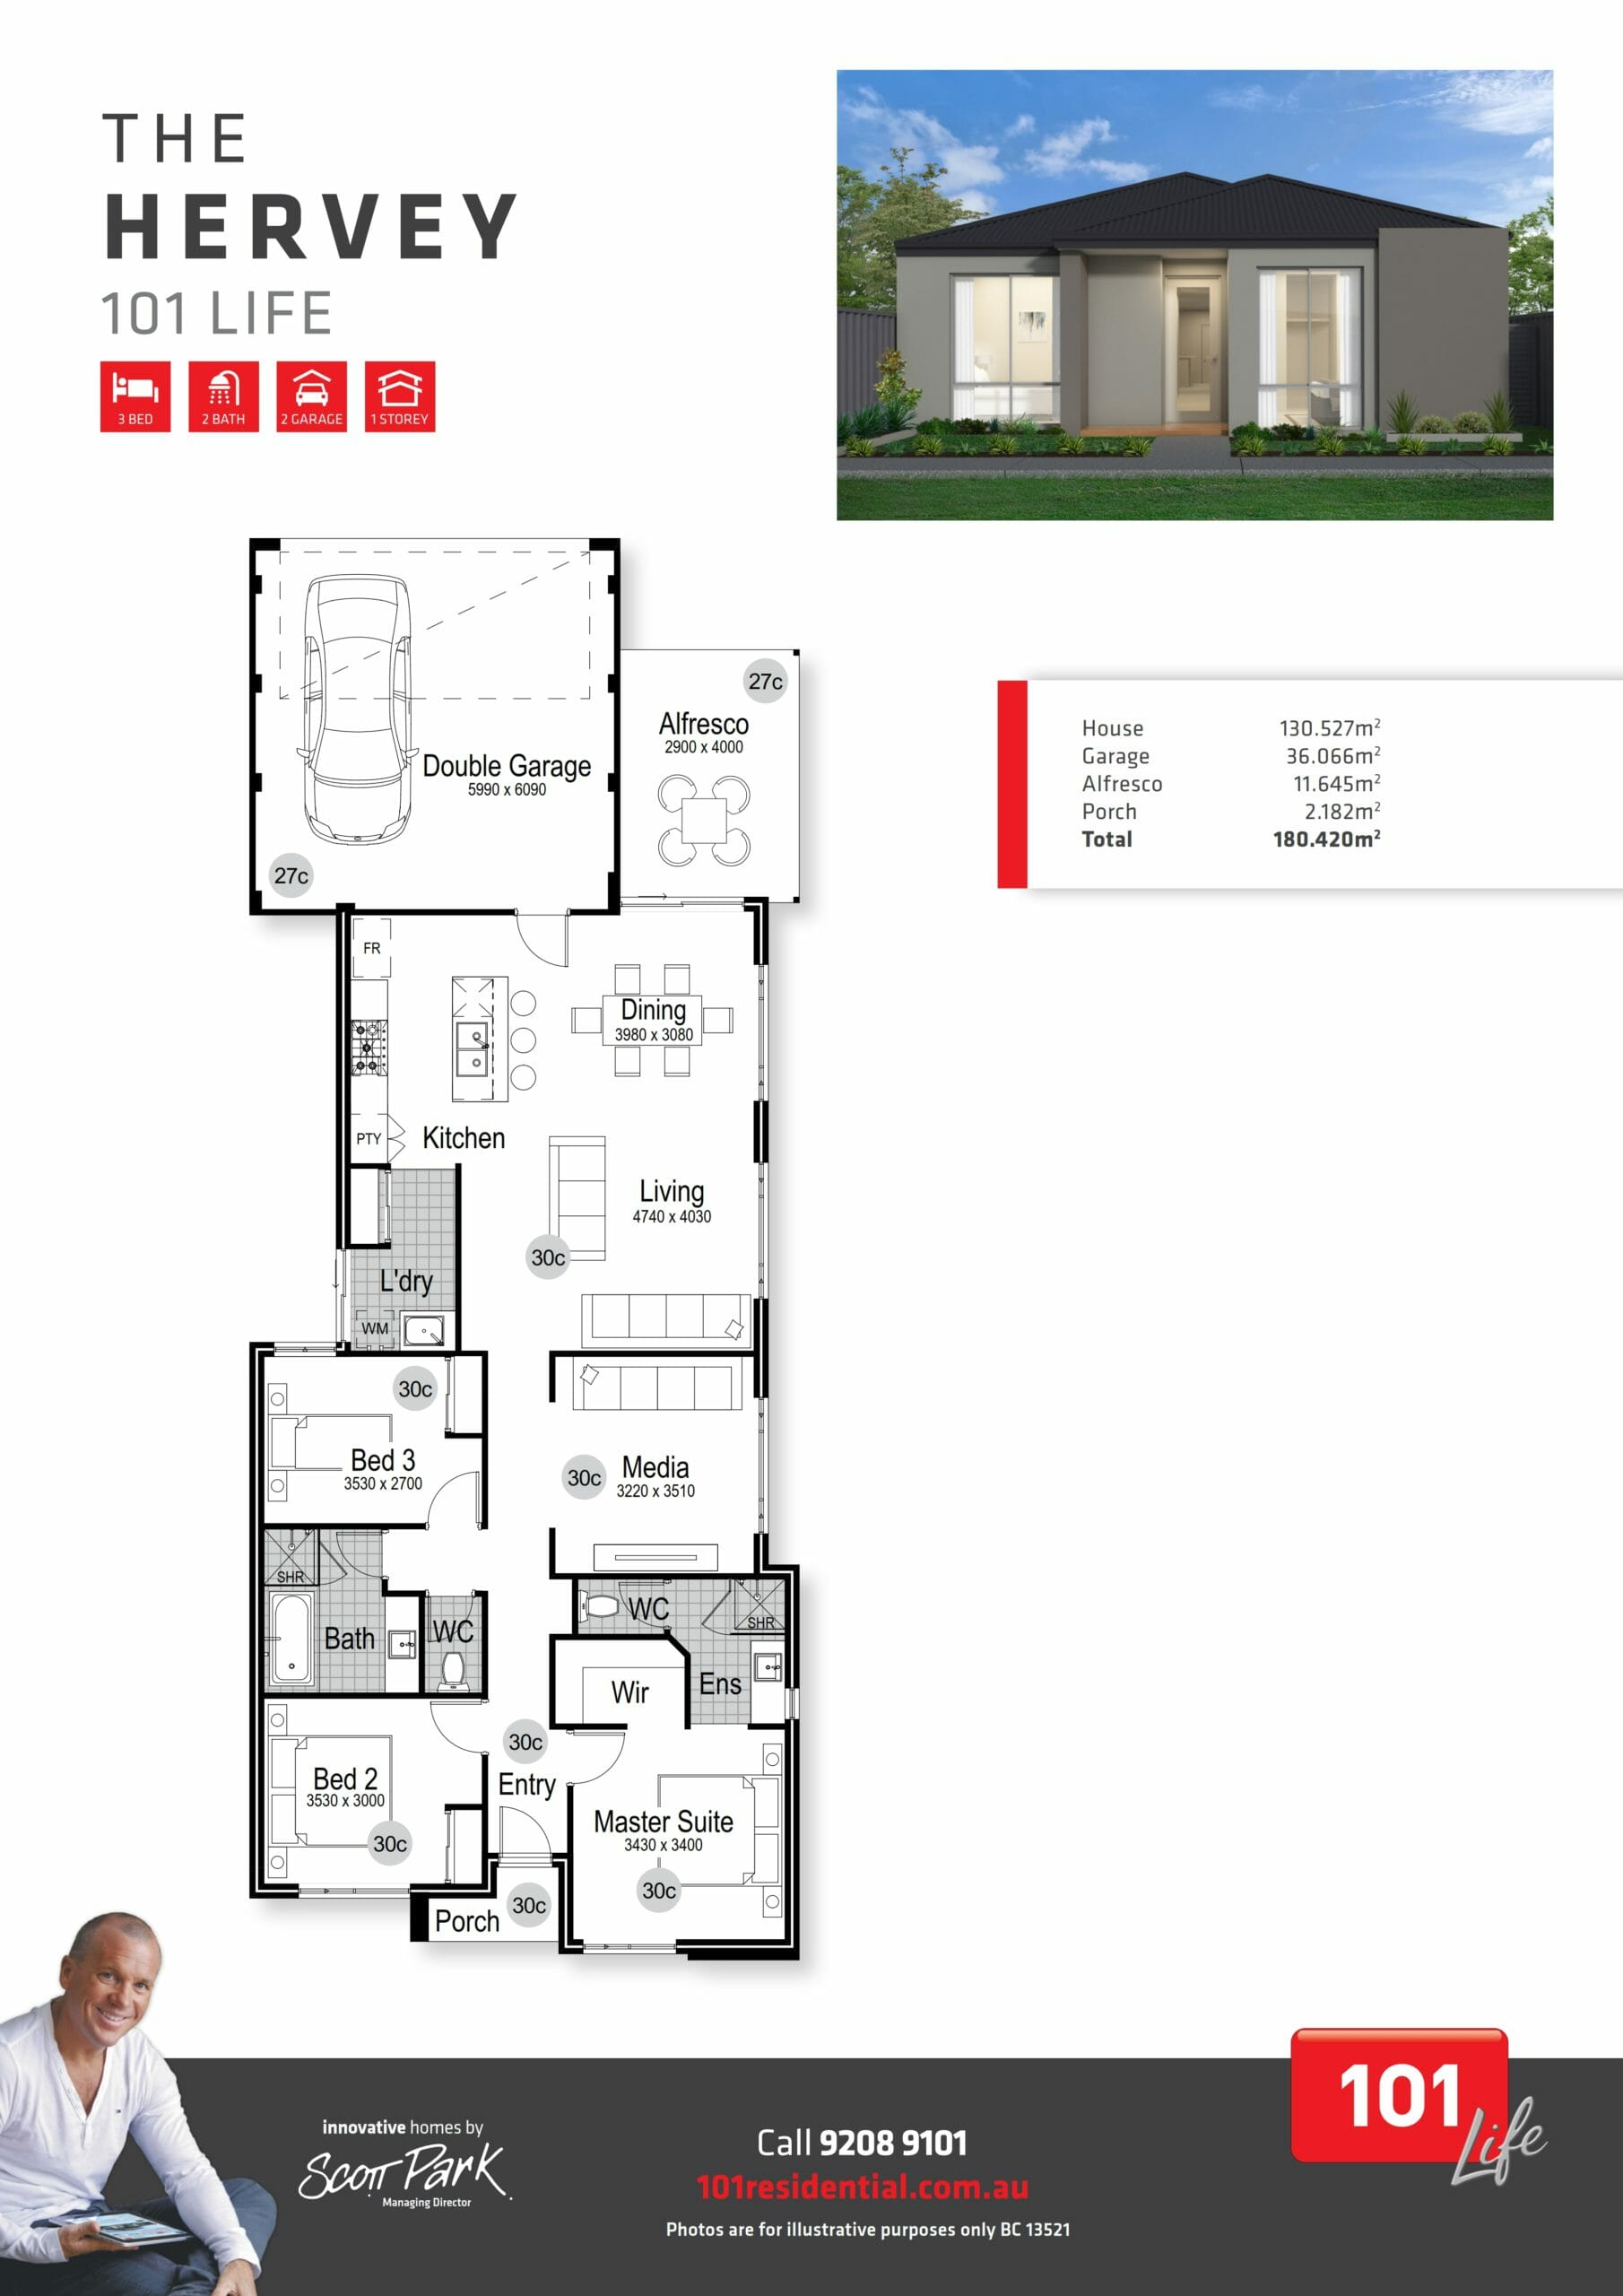 101 A3 Floor Plan - Hervey WEB_001